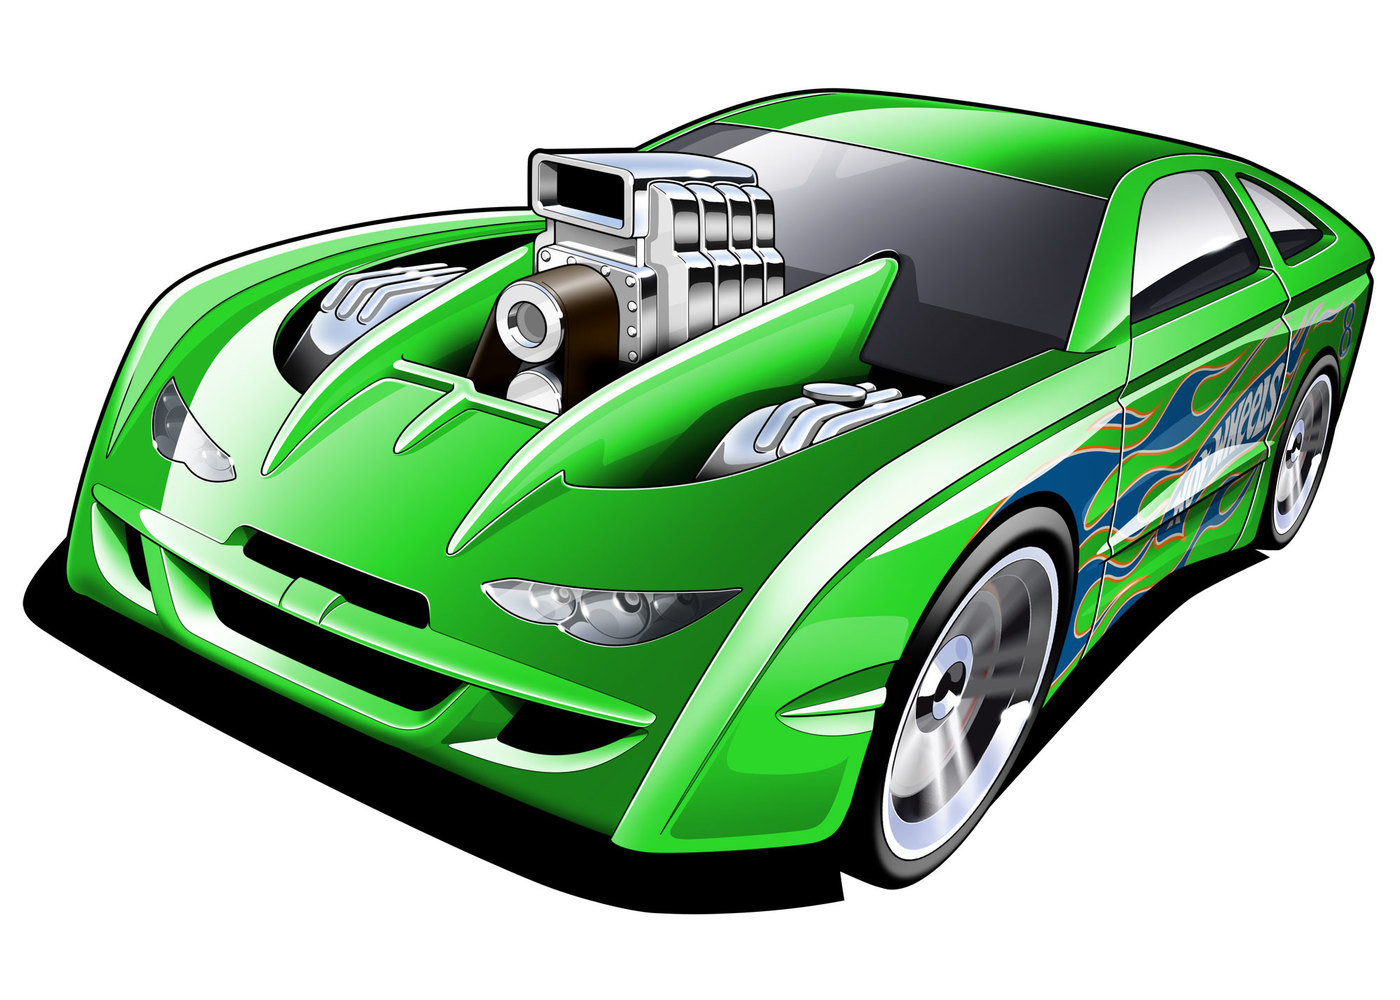 Awesome Race Car Wallpapers Hot Wheels Illustration By Jamie Seymour At Coroflot Com